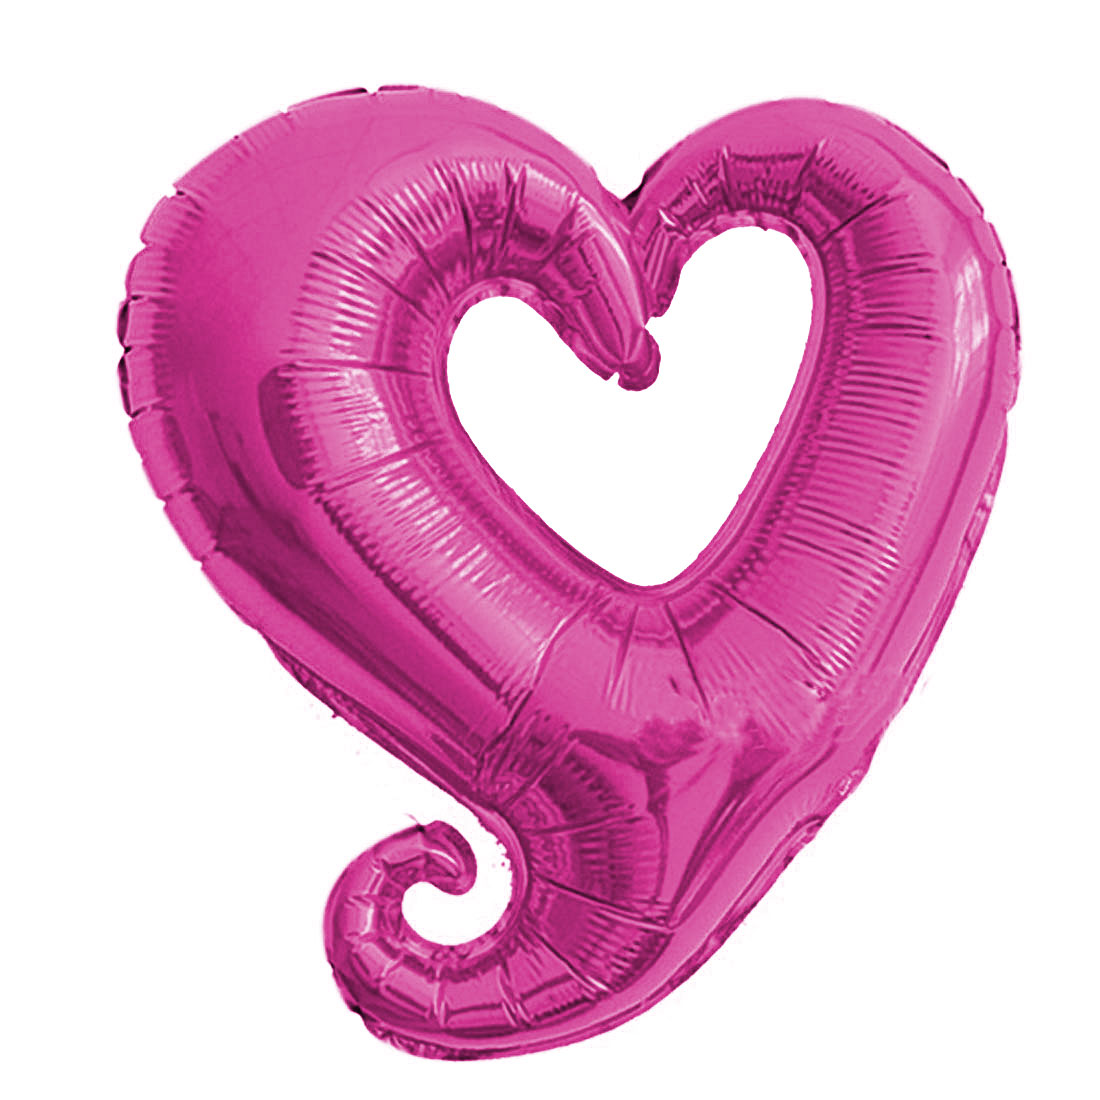 Foil Heart Design Inflation Balloon Wedding Party Celebration Decor Fuchsia 14.6 Inch